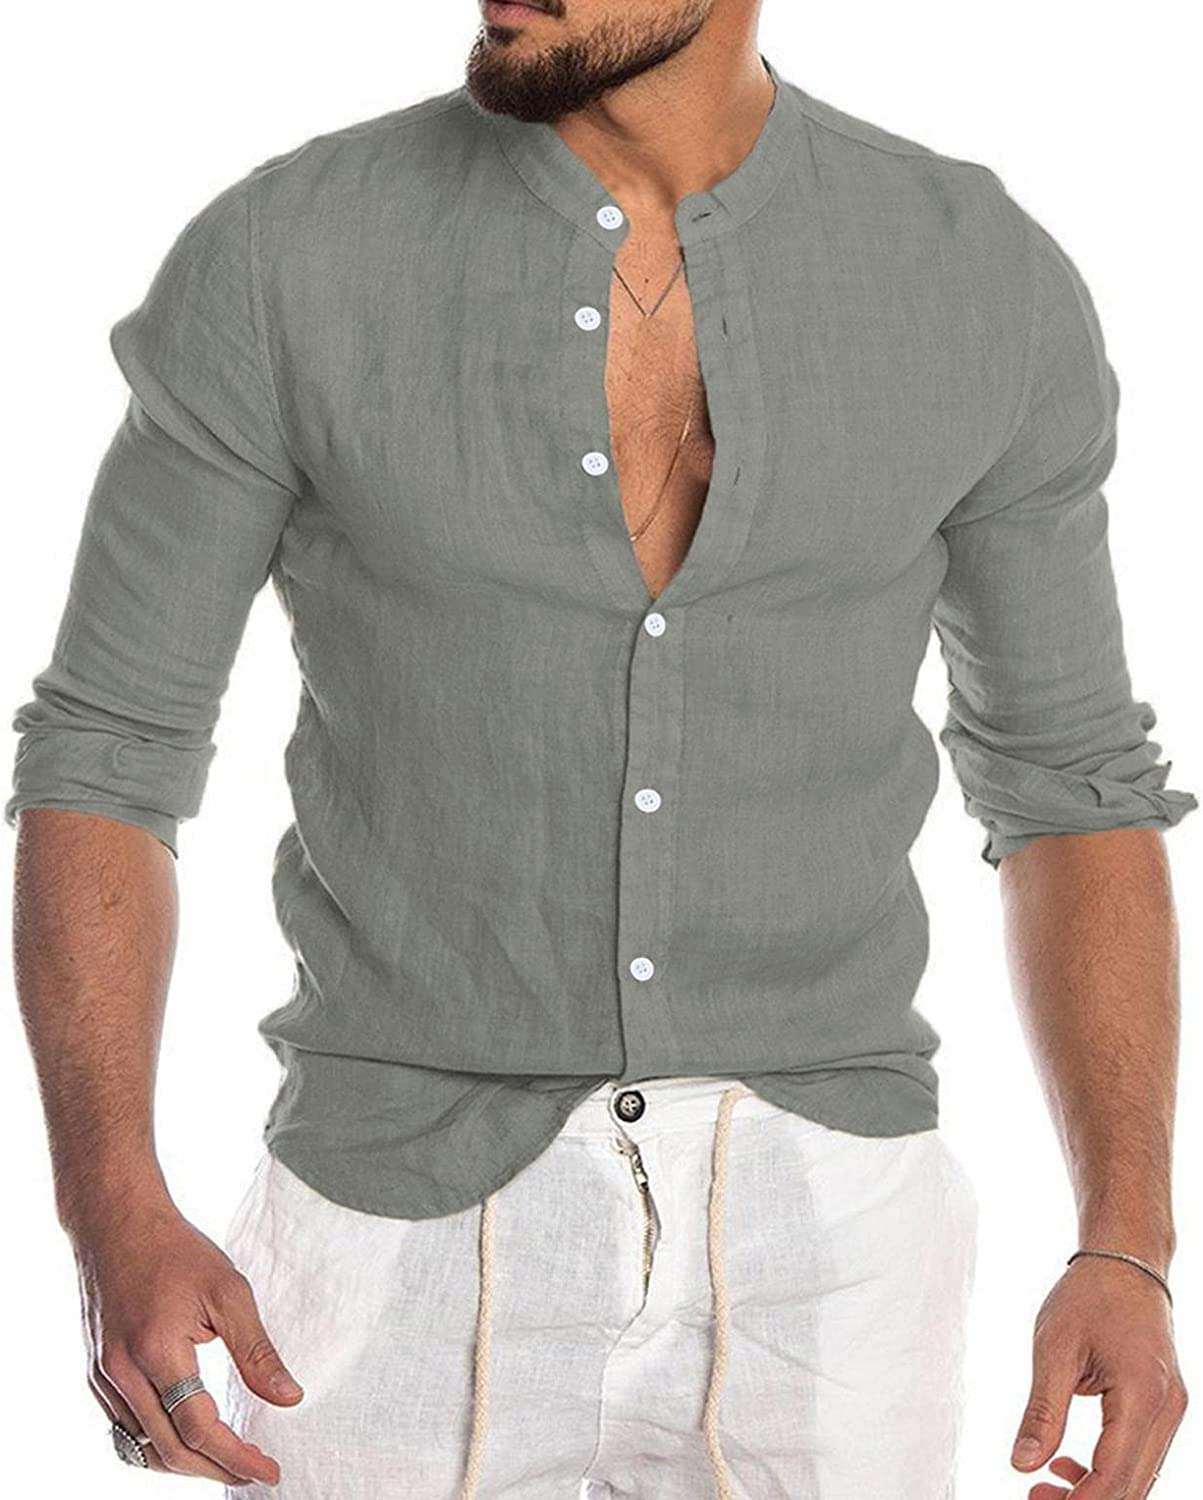 Beppter Big and Tall Shirts for Men Stand Collar Button Down Coats Soft Cozy Baggy Linen Outwear